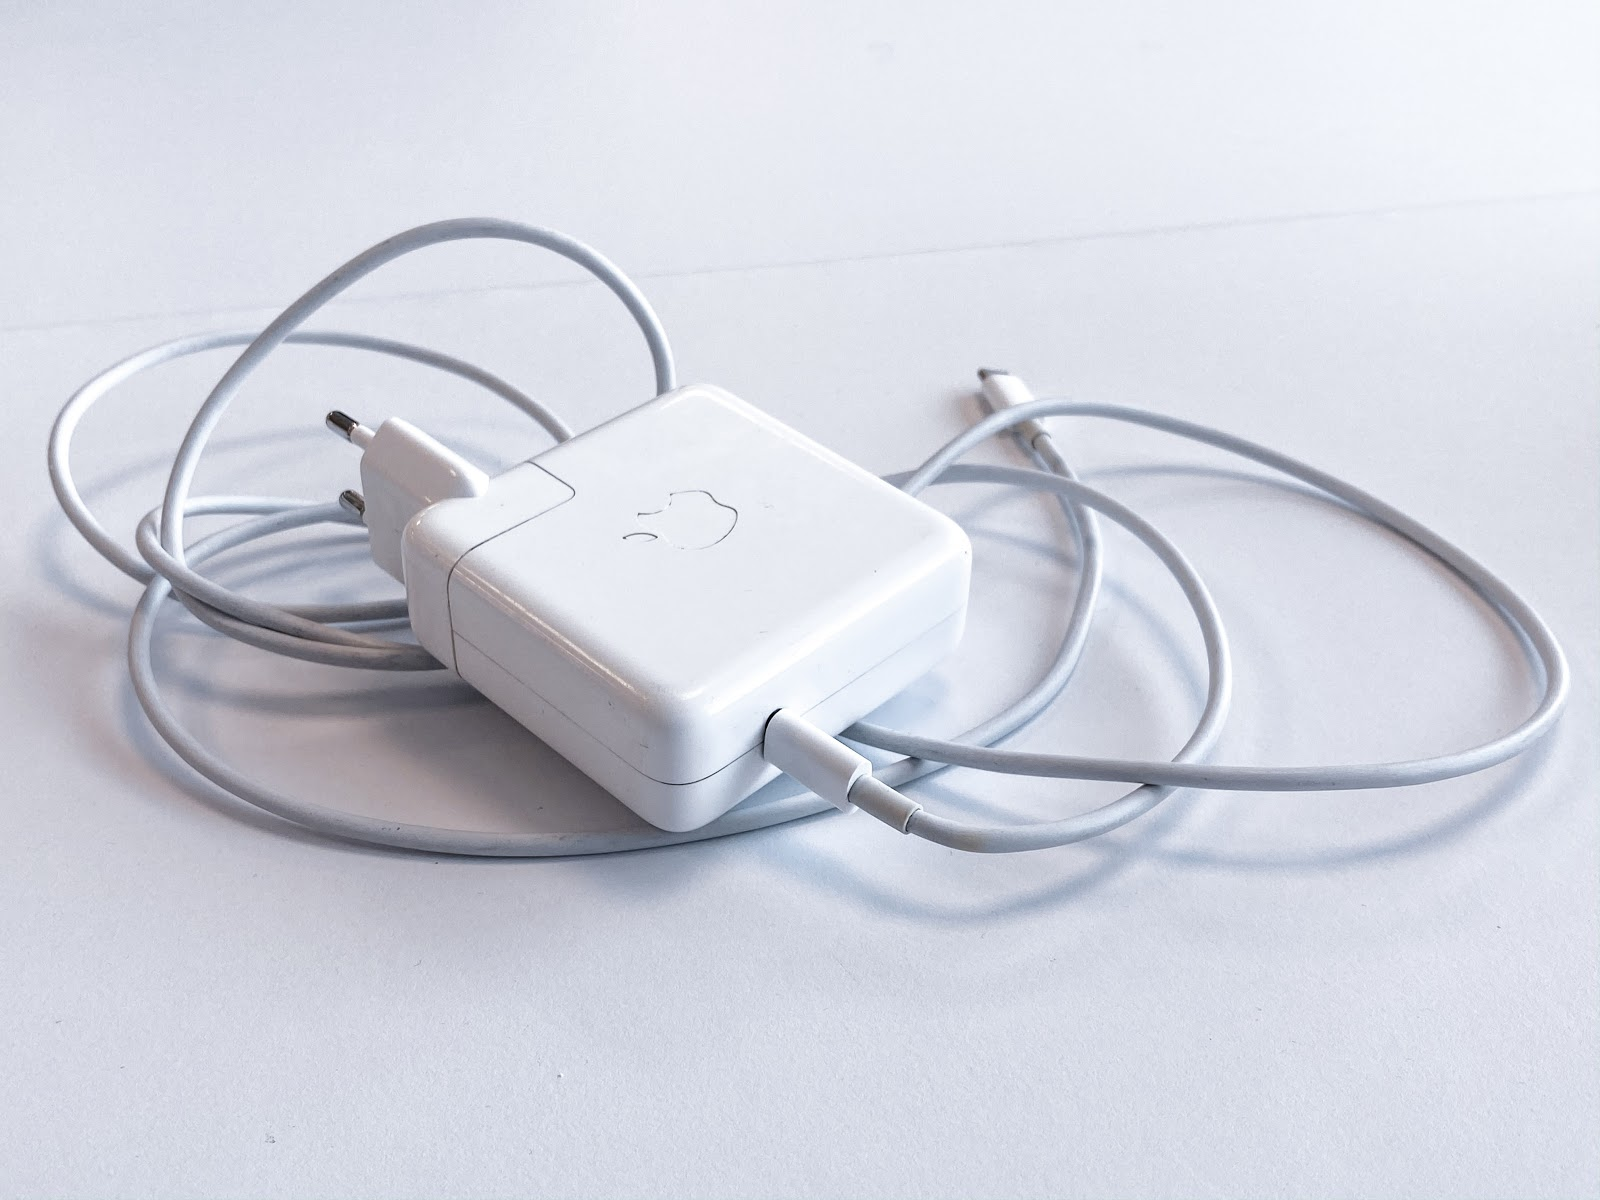 A white Apple laptop charger with cord curled up beneath it.